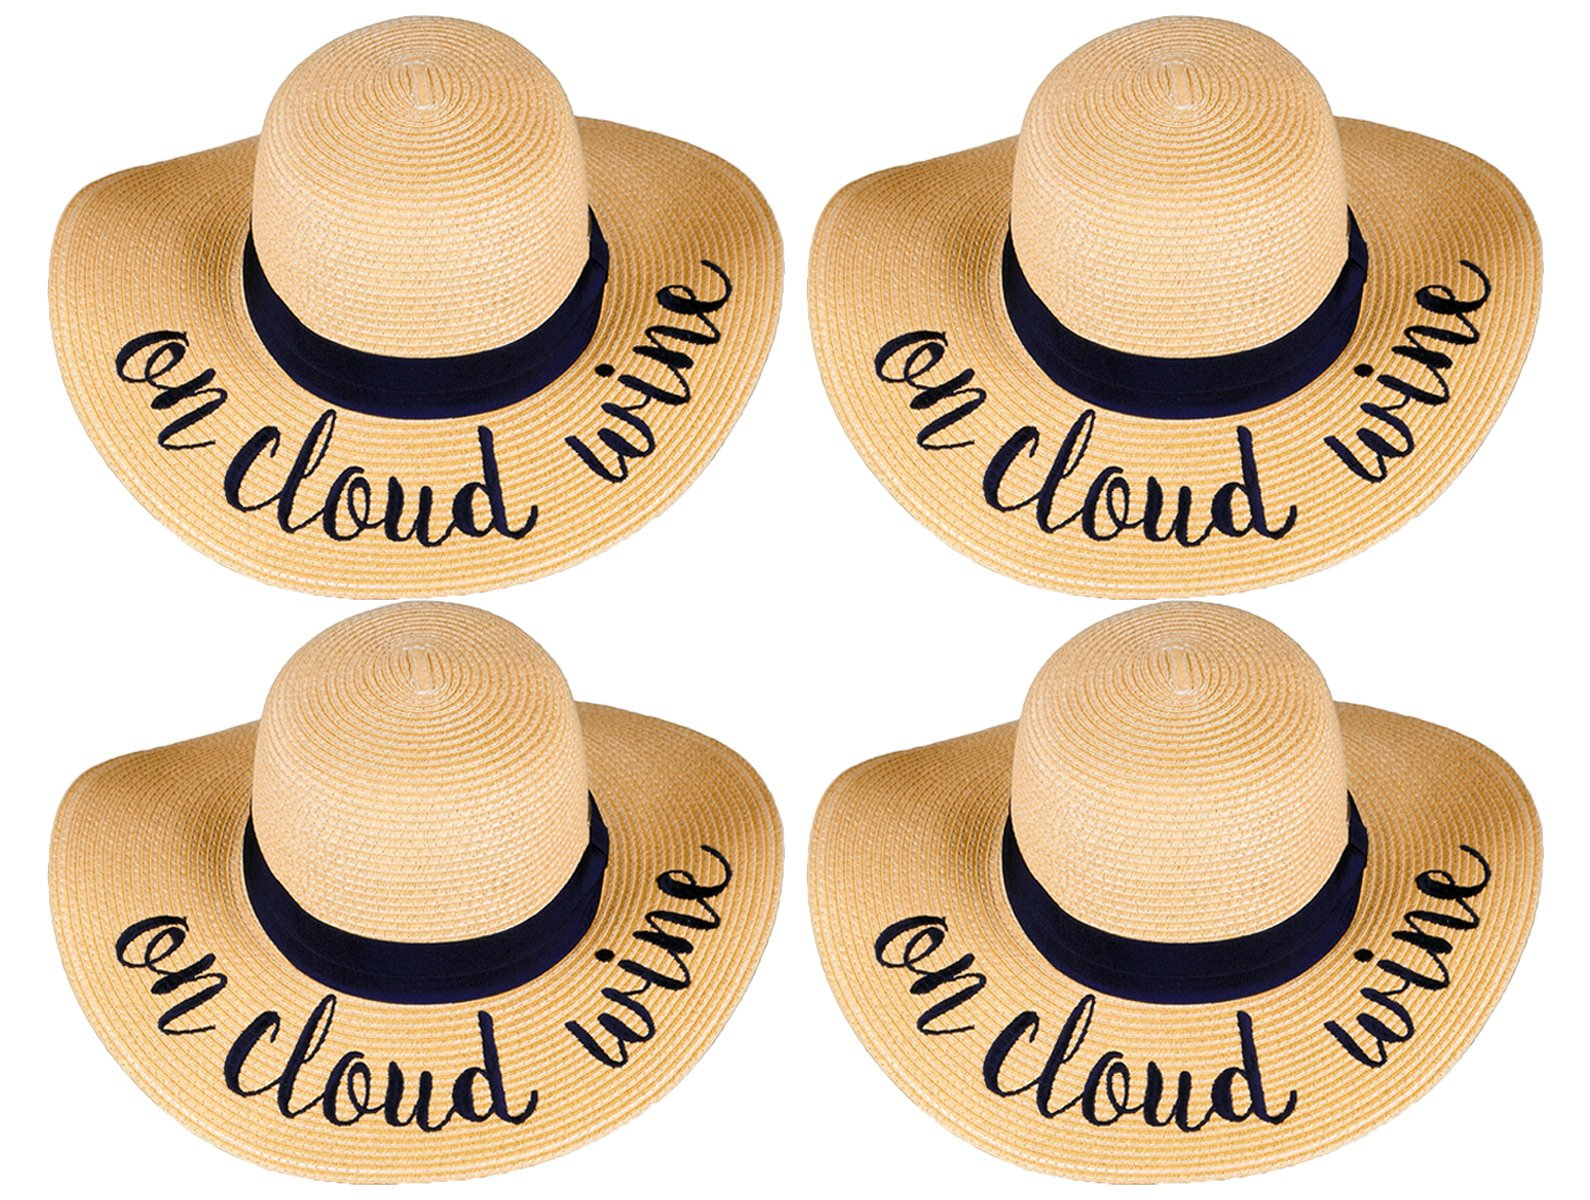 H-2017-BUNDLE-OCWx4 Embroidered Sun Hat 4 Pack - On Cloud Wine by Funky Junque